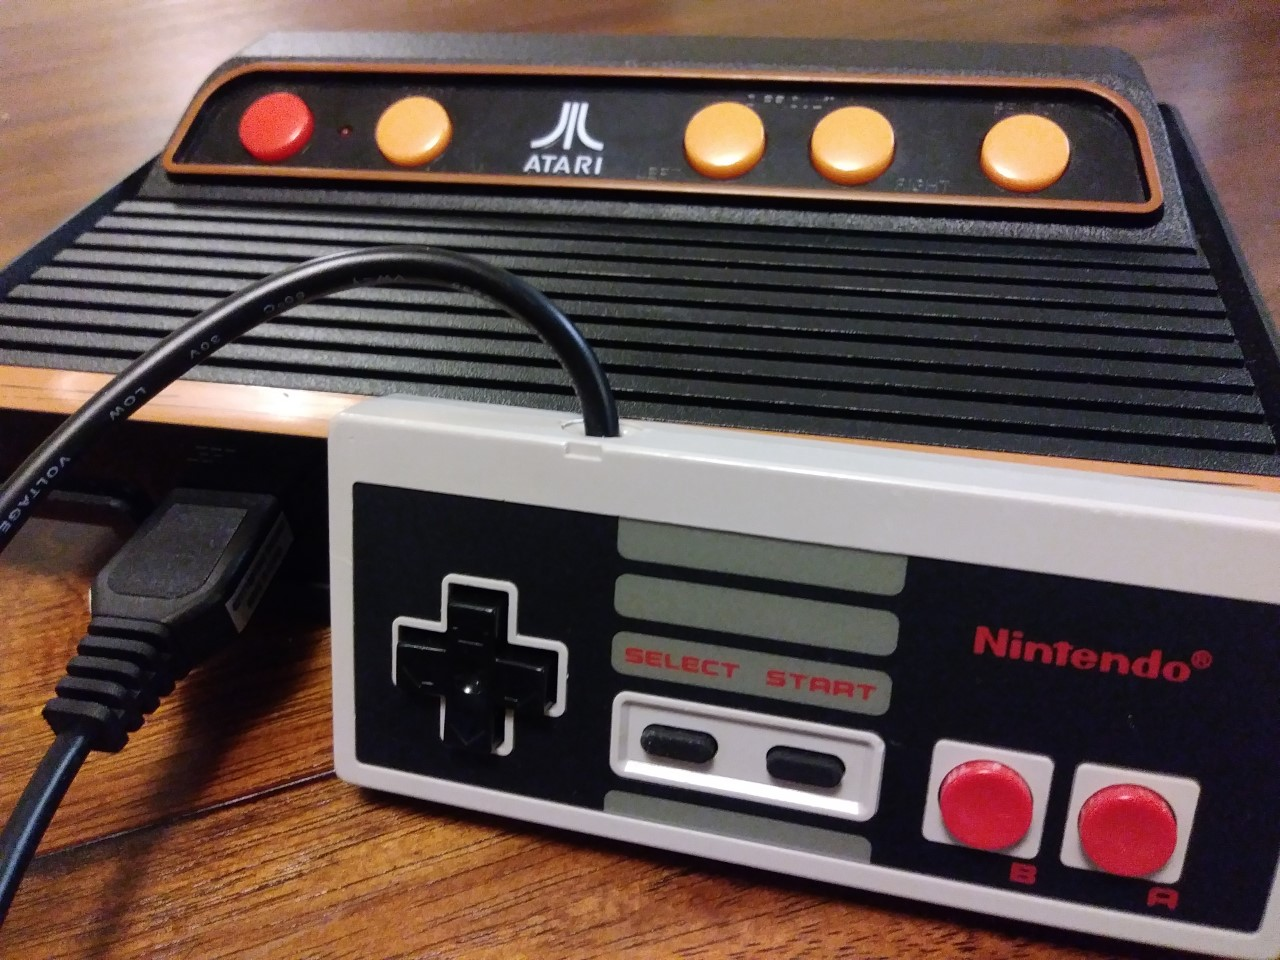 Atari Mods: We Review A Modded NES Controller On The Atari Flashback 8 Gold